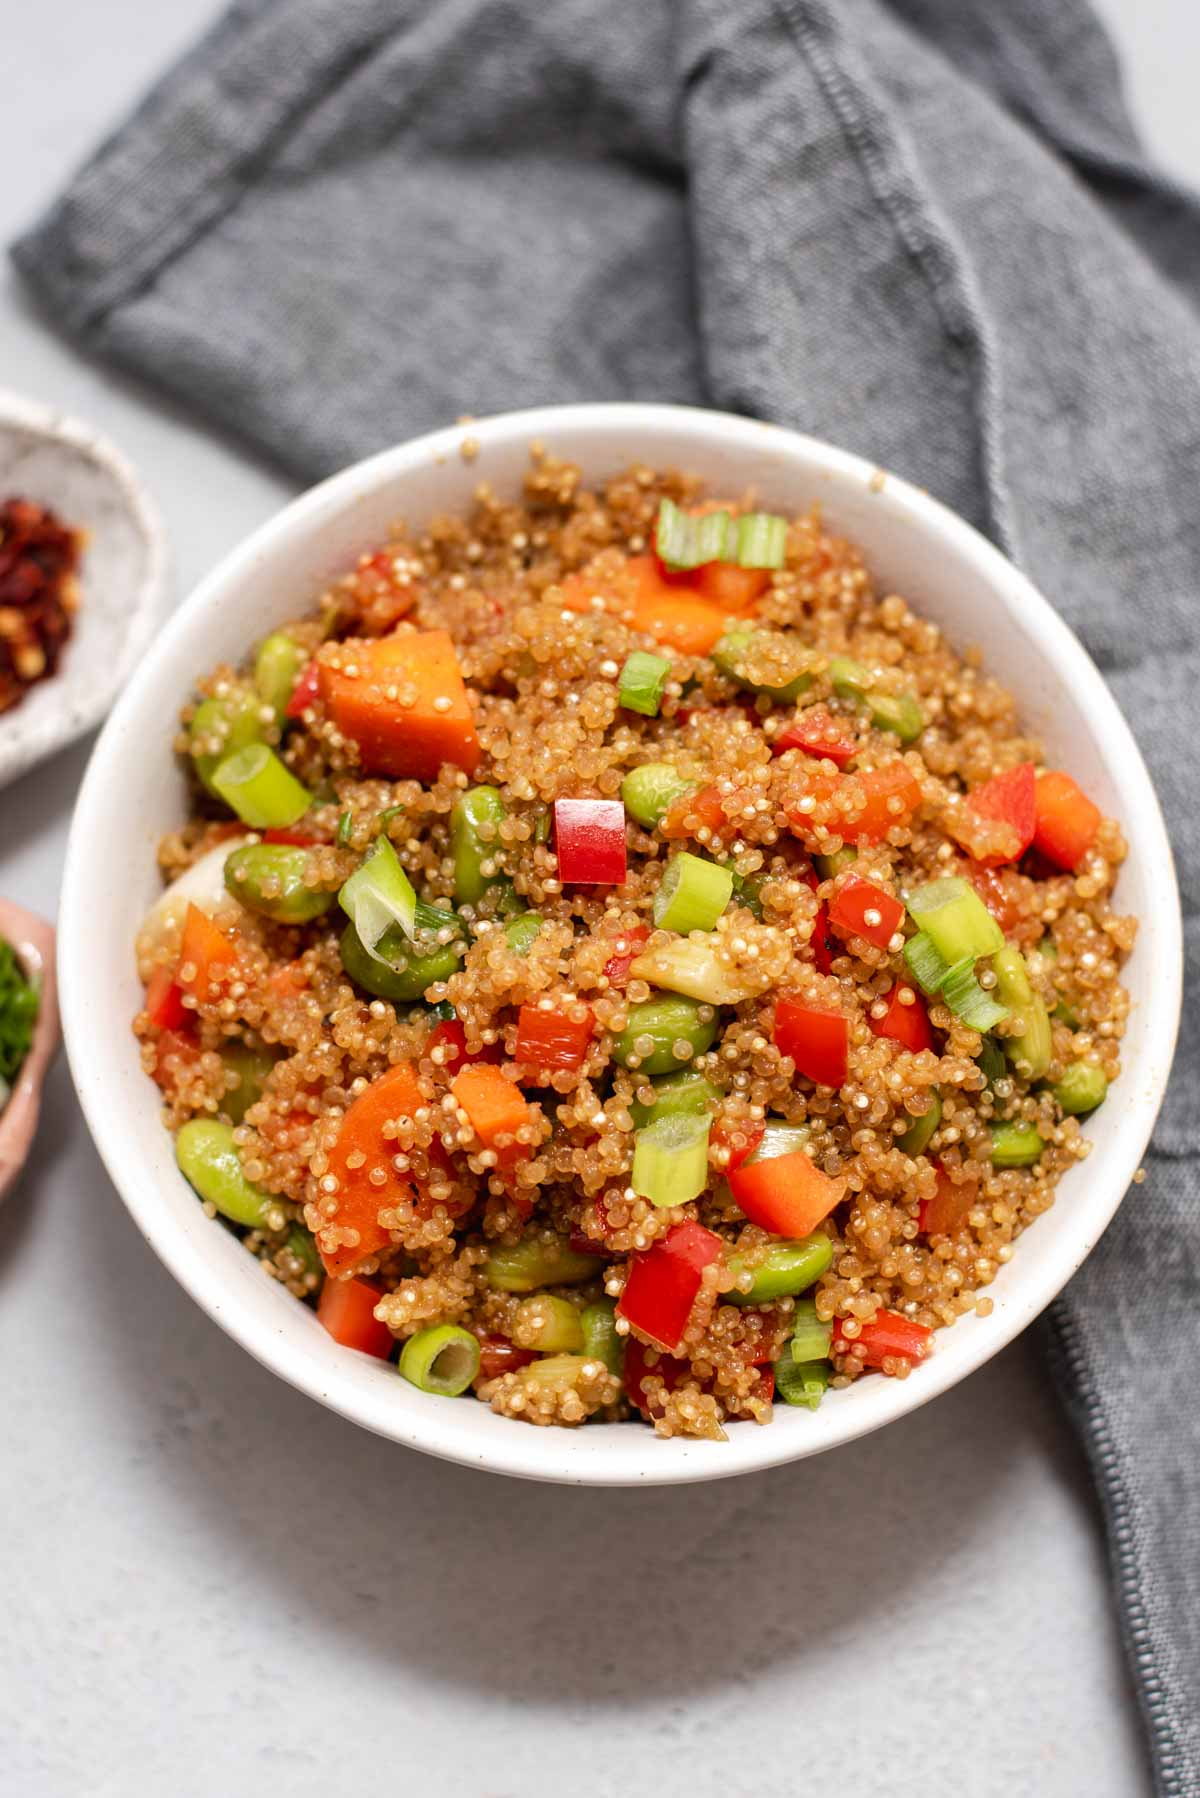 Overhead view of white bowl filled with quinoa fried rice on a gray background